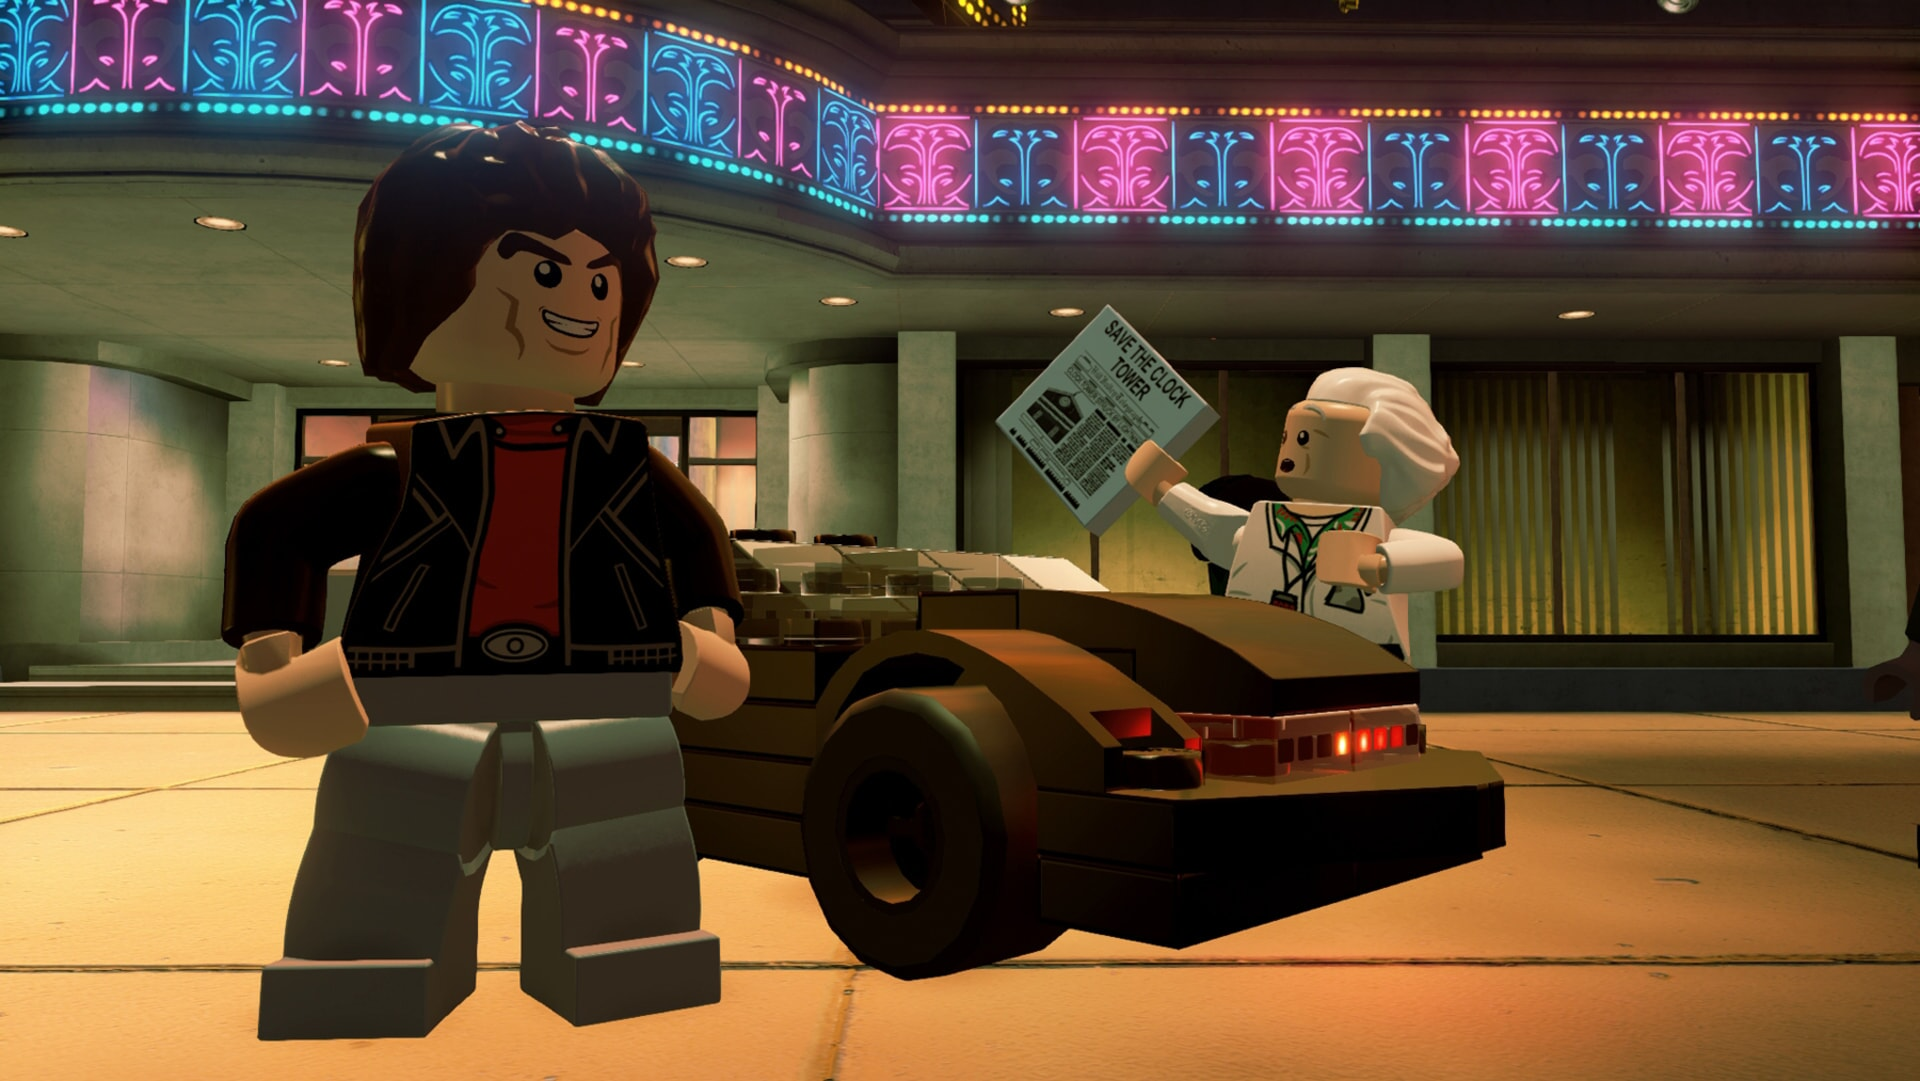 LEGO Dimensions: Knight Rider and the Professor from Back to the Future